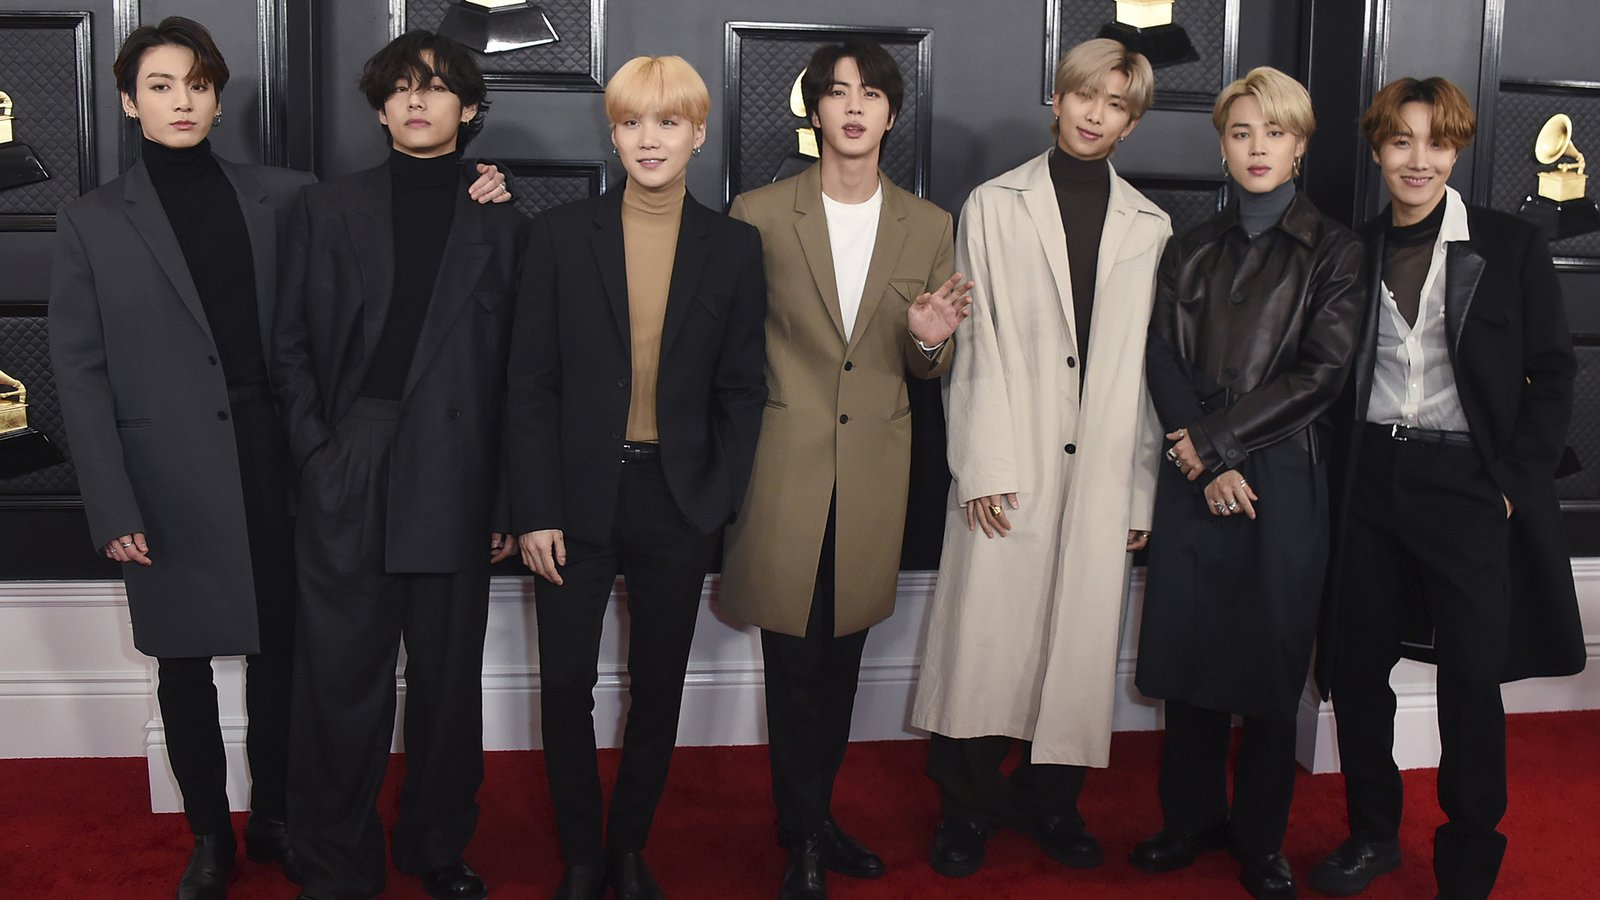 BTS Will Represent South Korea as Celebrity Diplomats at the UN